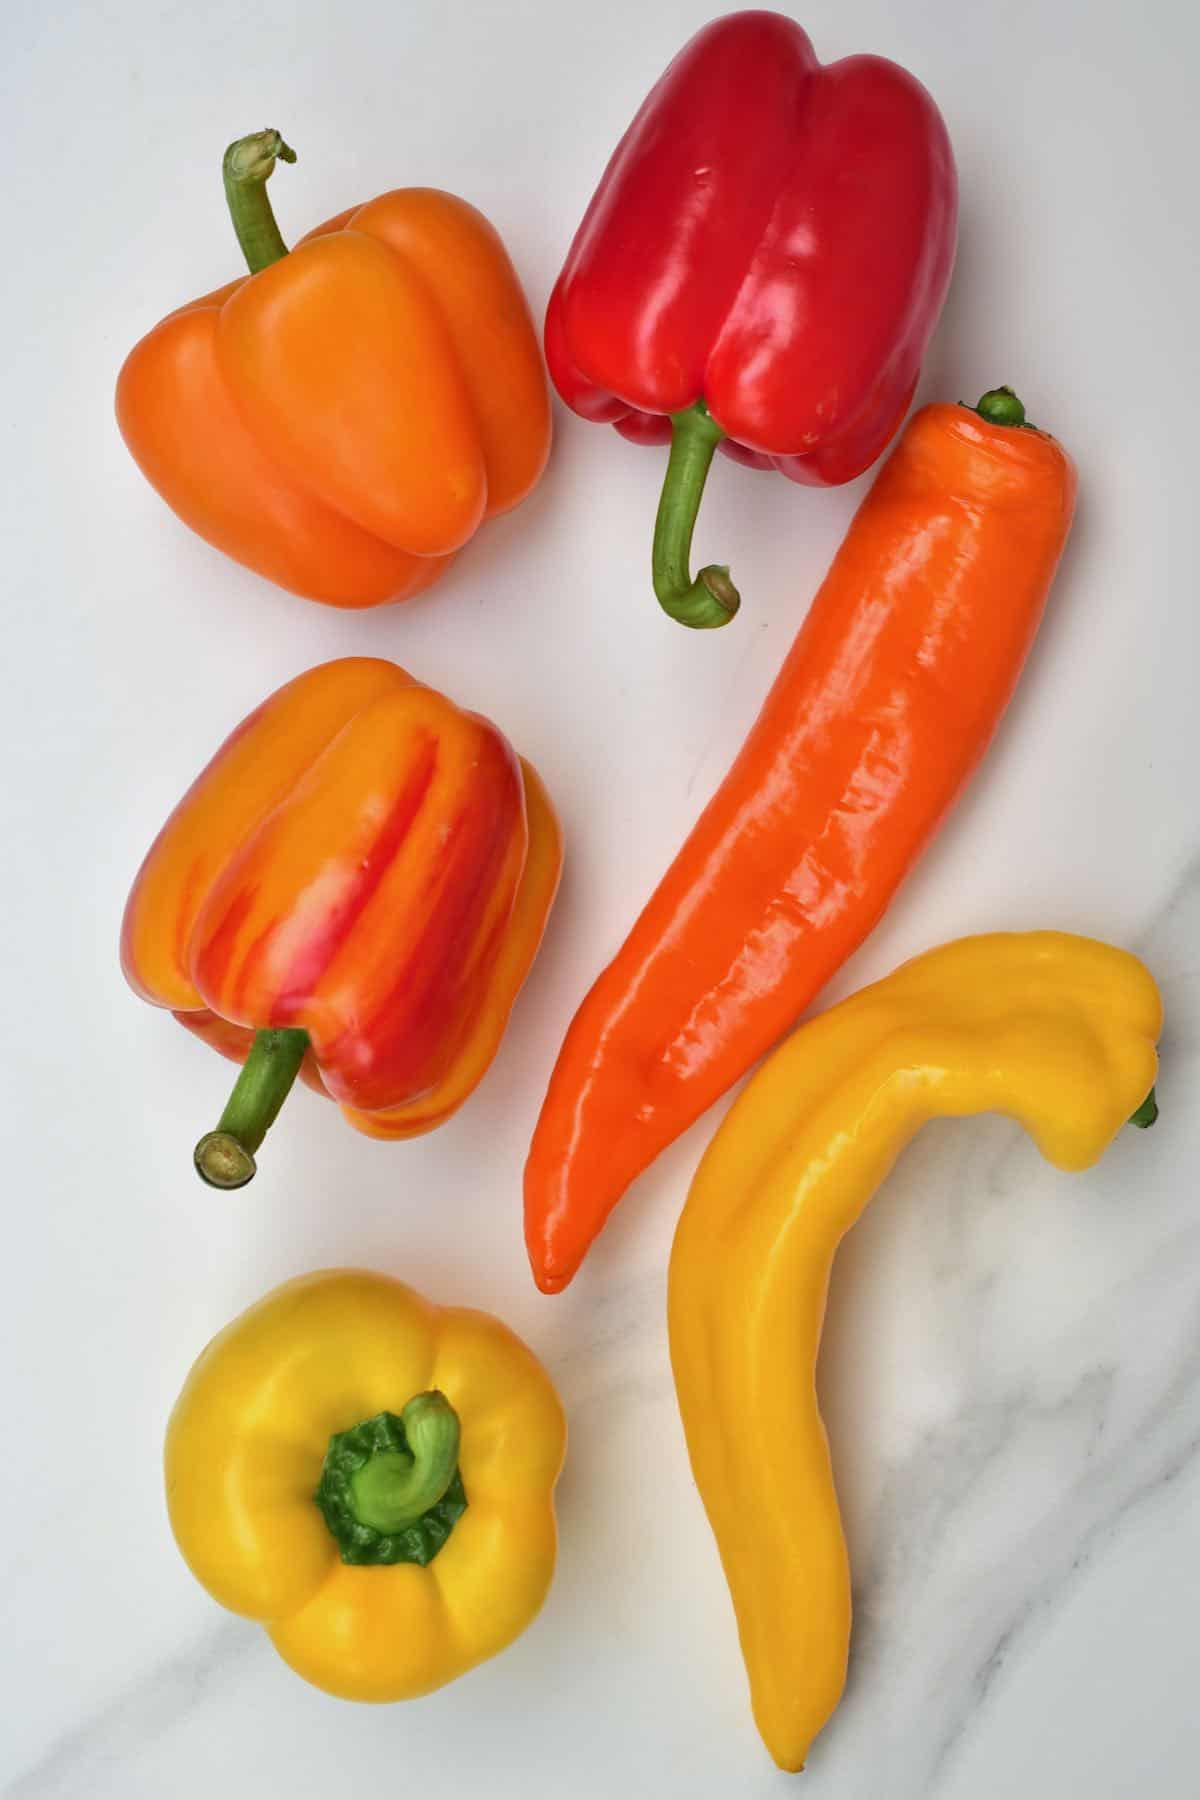 A selection of colorful peppers